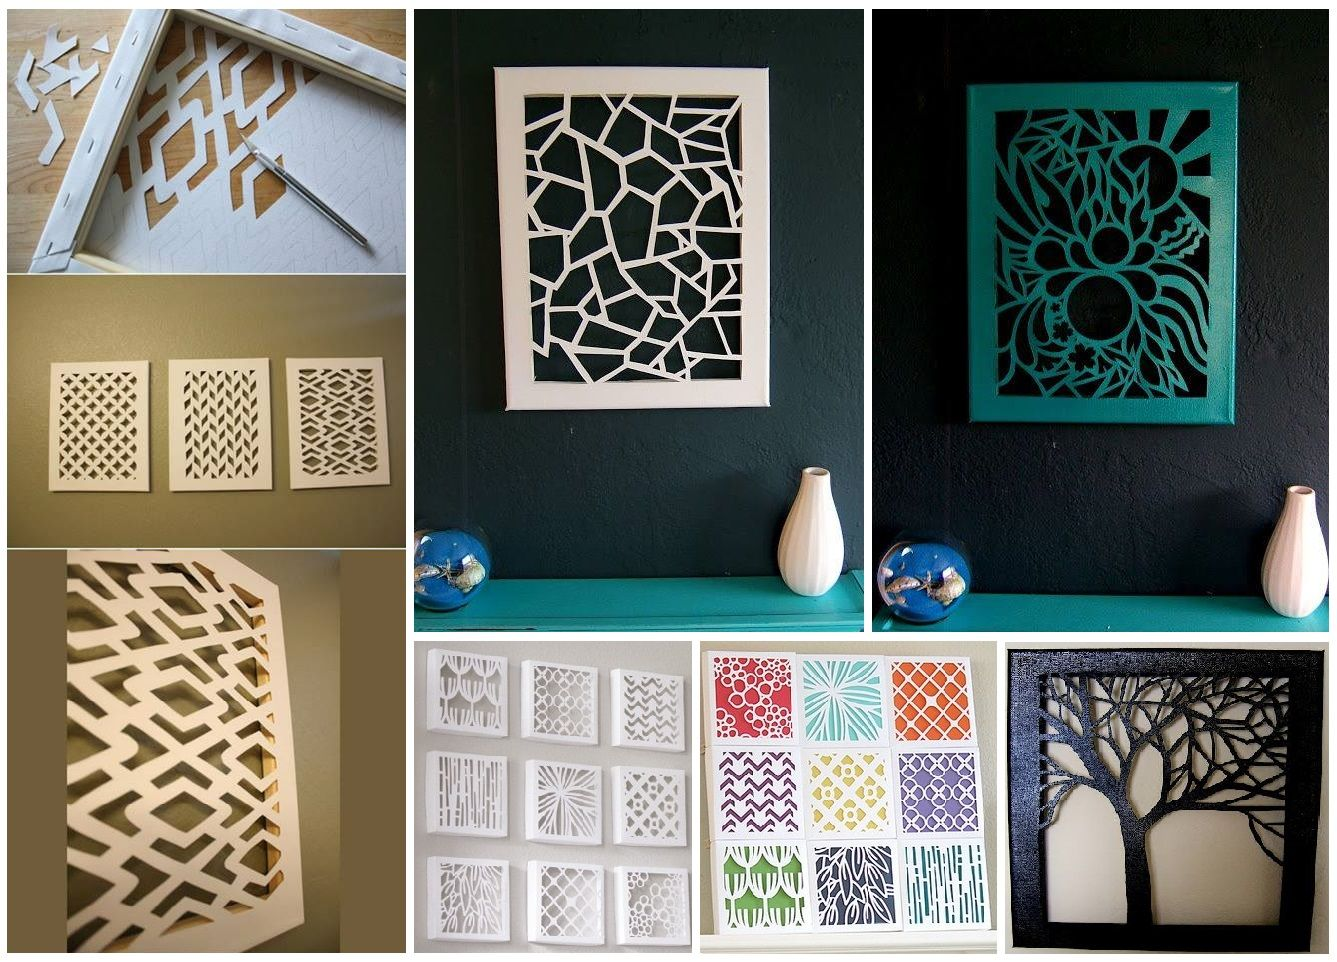 Diy wall art canva things i would like to try pinterest diy diy wall art canva solutioingenieria